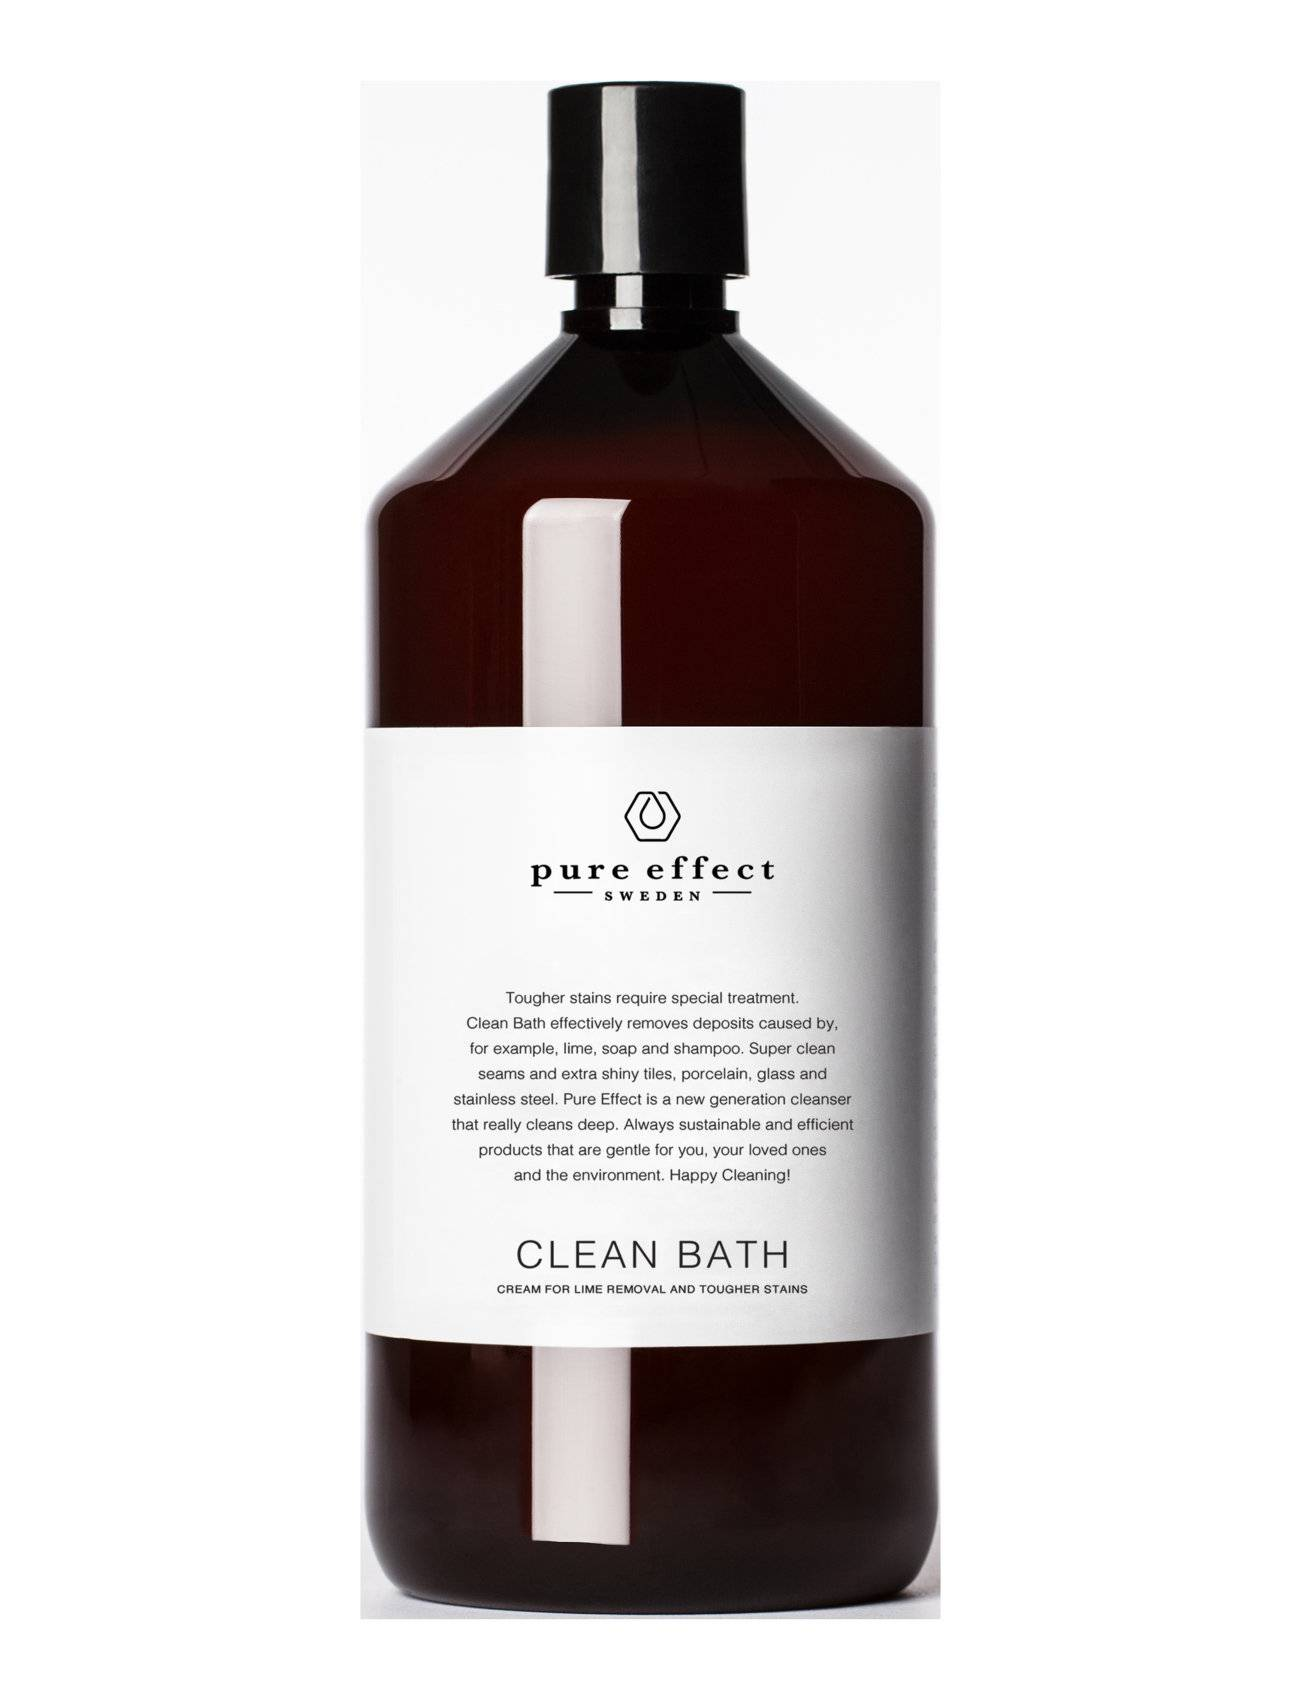 Pure Clean Bath Beauty WOMEN Home Cleaning Products Nude Pure Effect